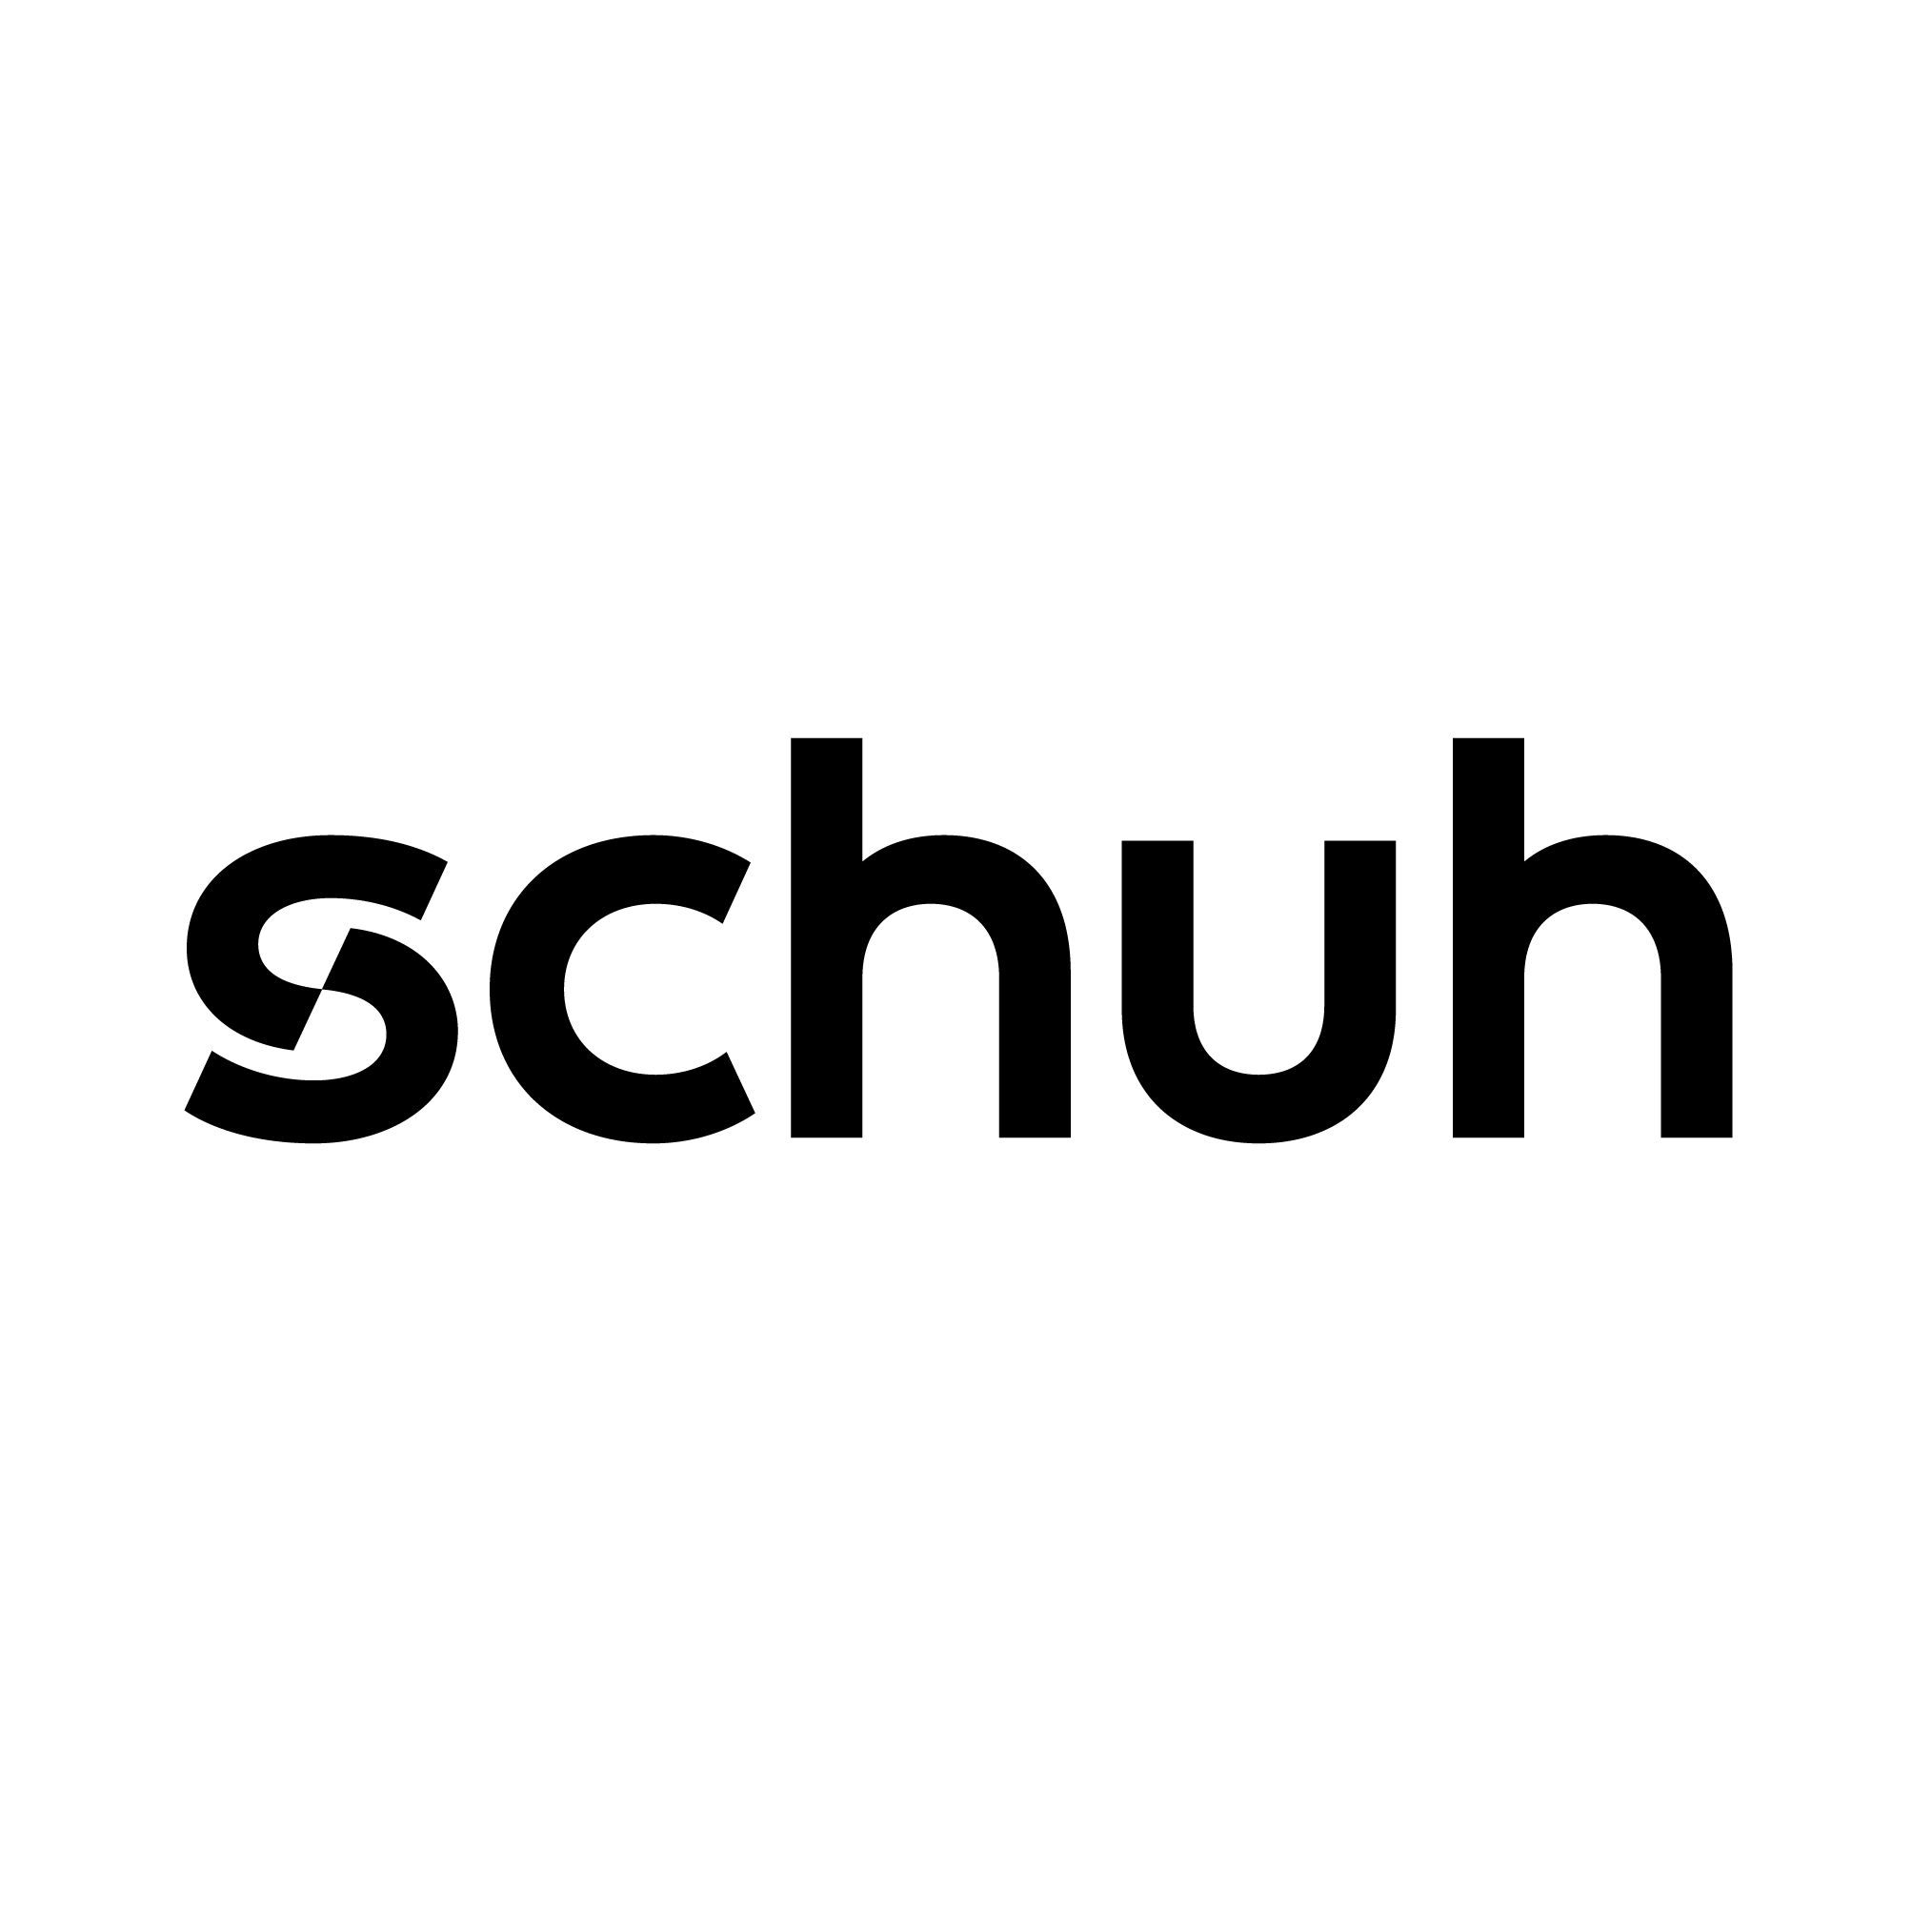 schuh - Swindon, Wiltshire SN1 1BA - 01793 230630 | ShowMeLocal.com